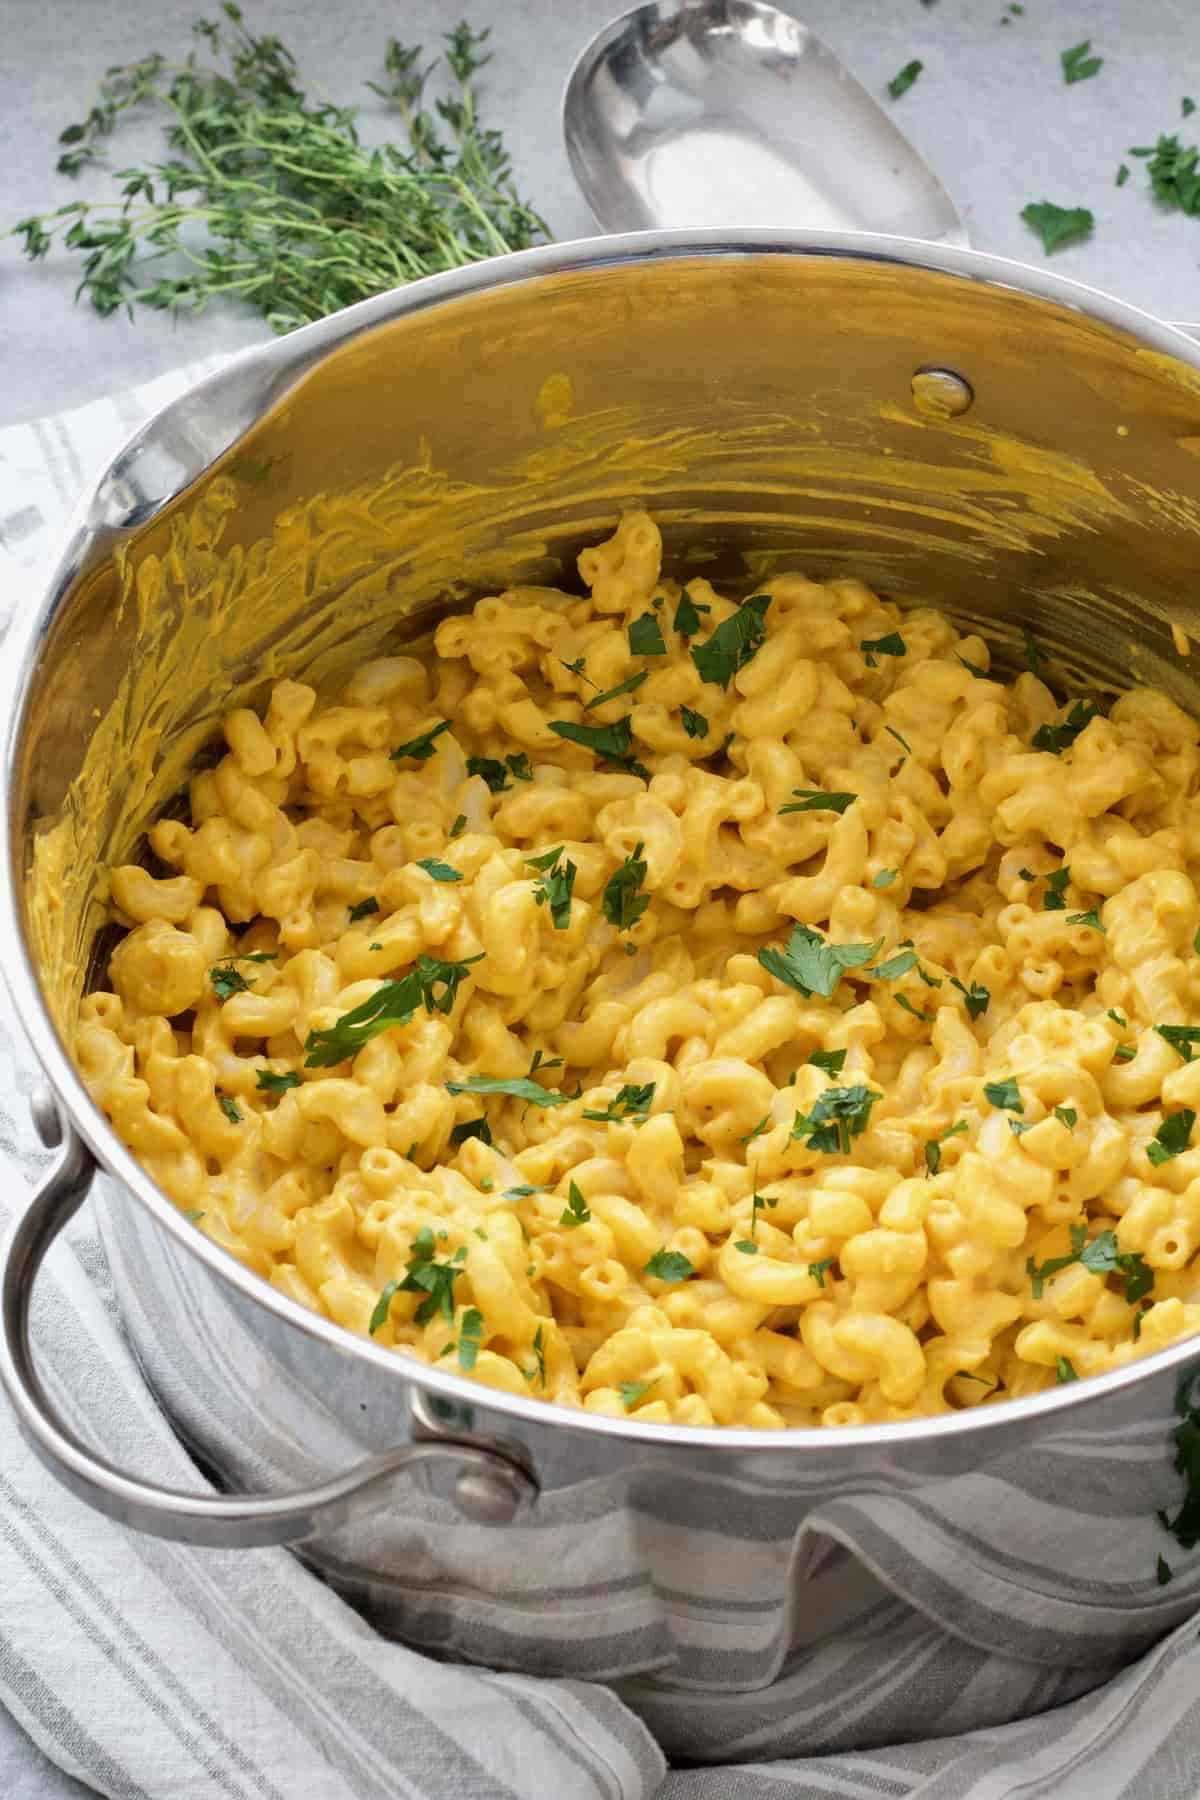 Pot with ready mac and cheese with parsley garnish.